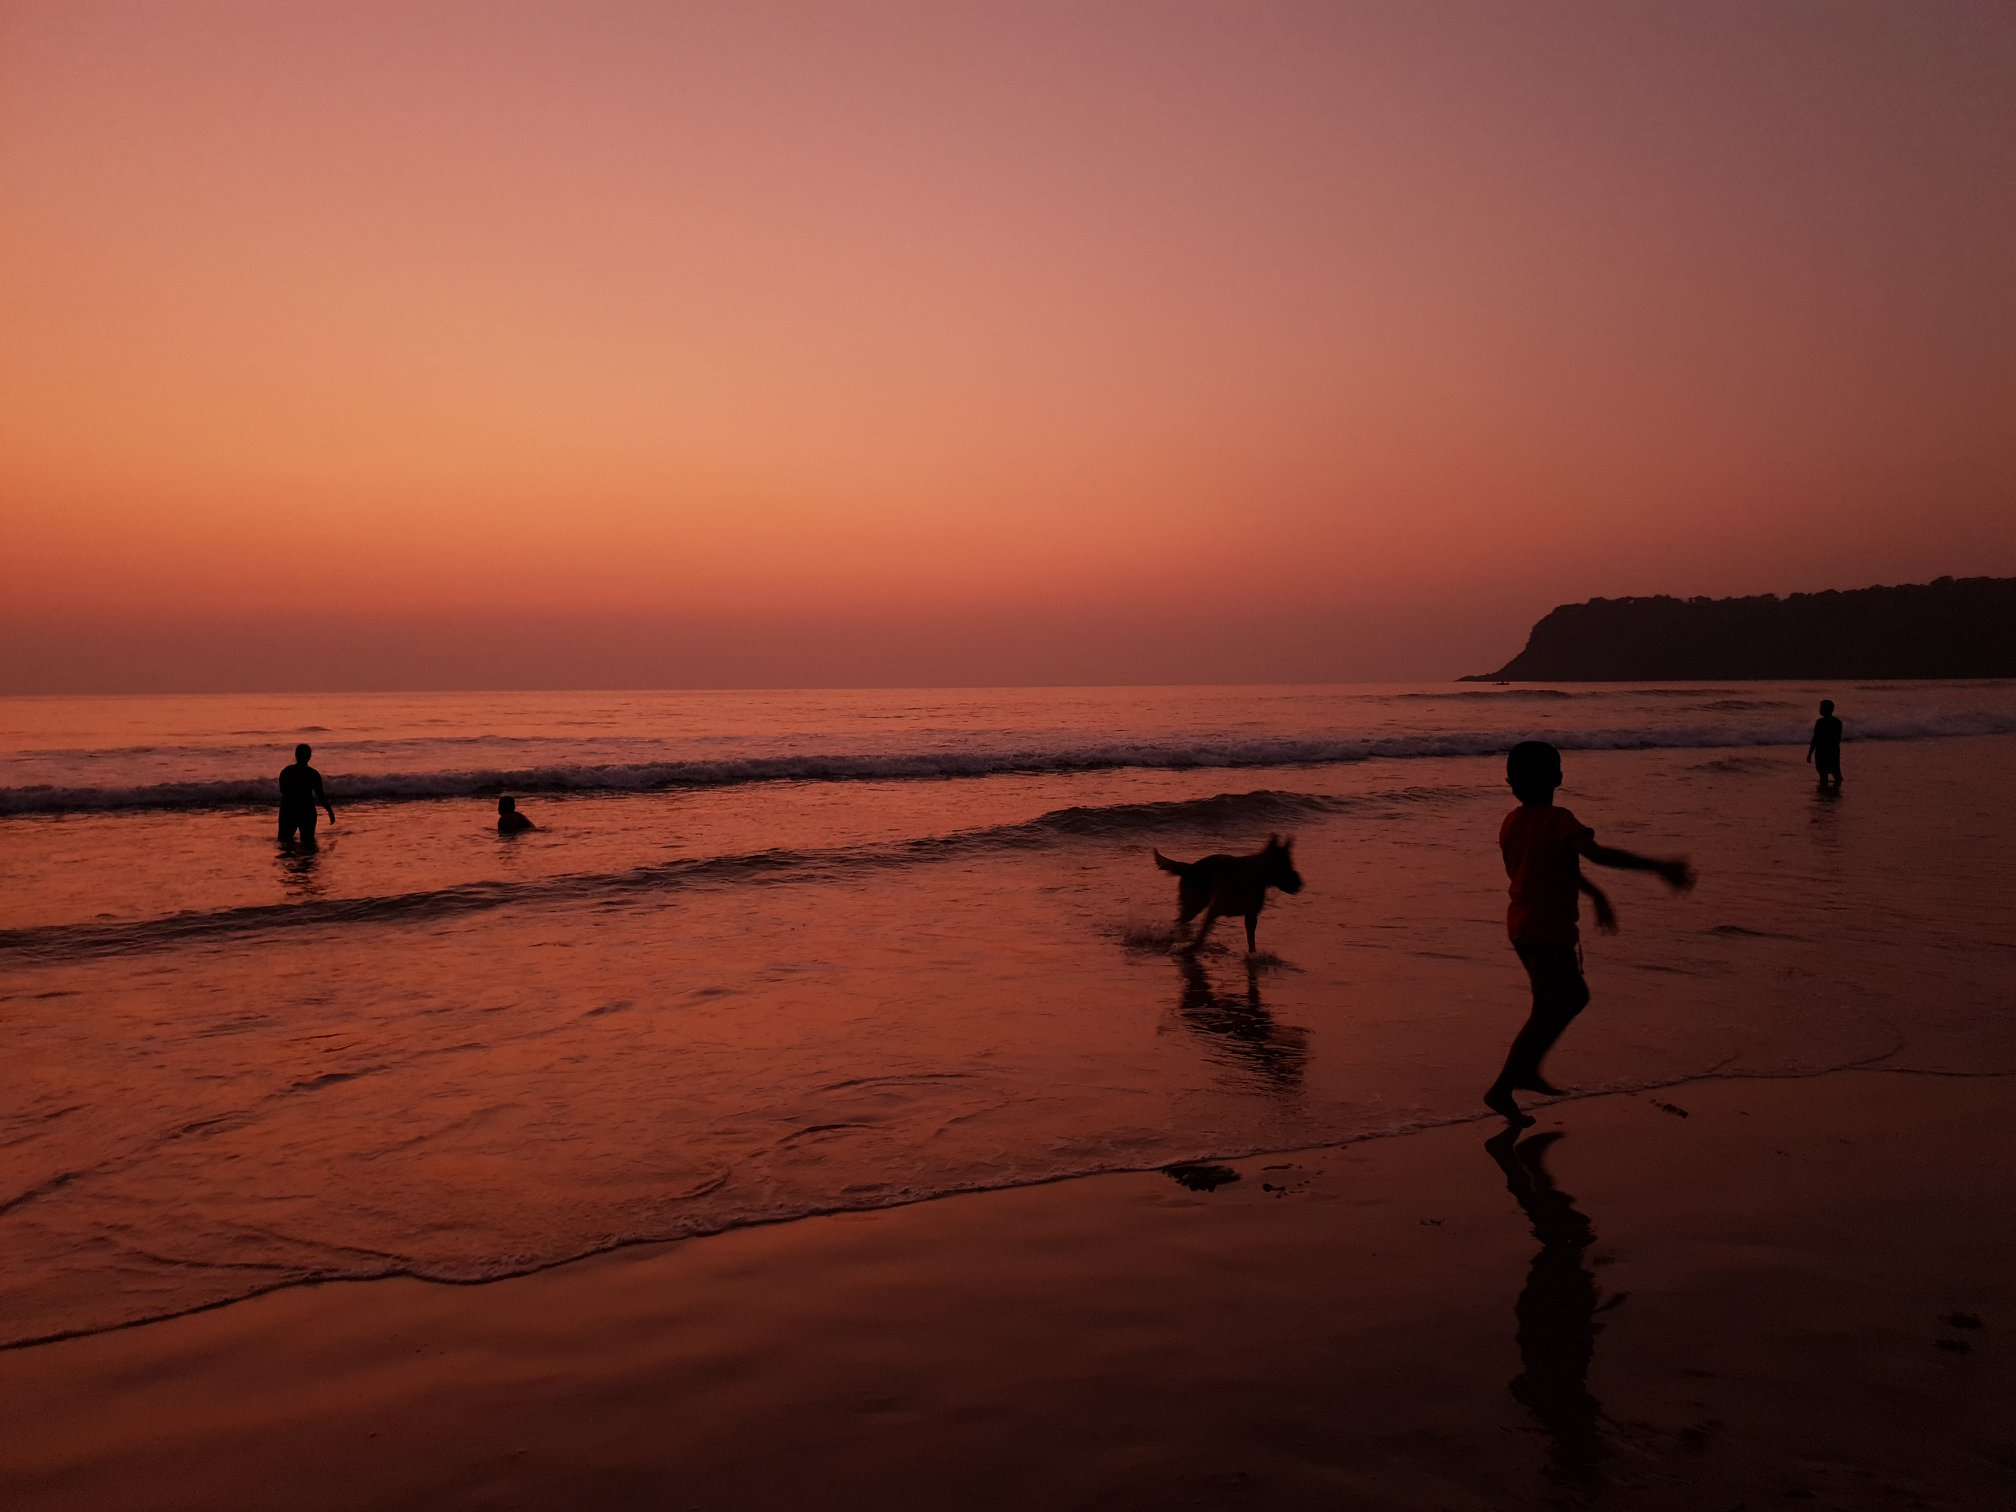 Nandu being chased by 'Whisky' at Agonda Beach-Goa